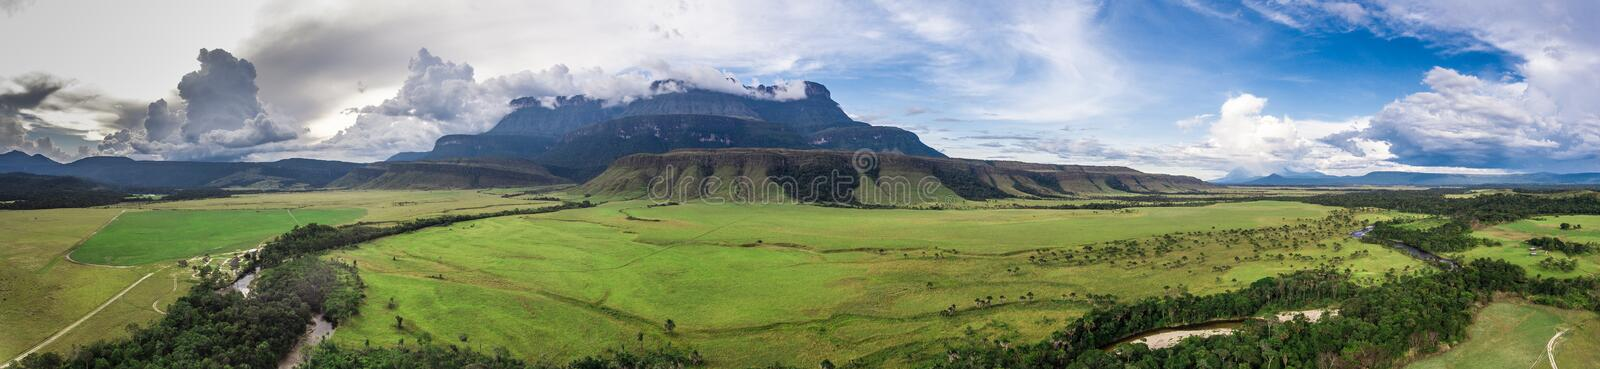 Panoramic View of Auyantepui Mountain, Venezuela stock photos